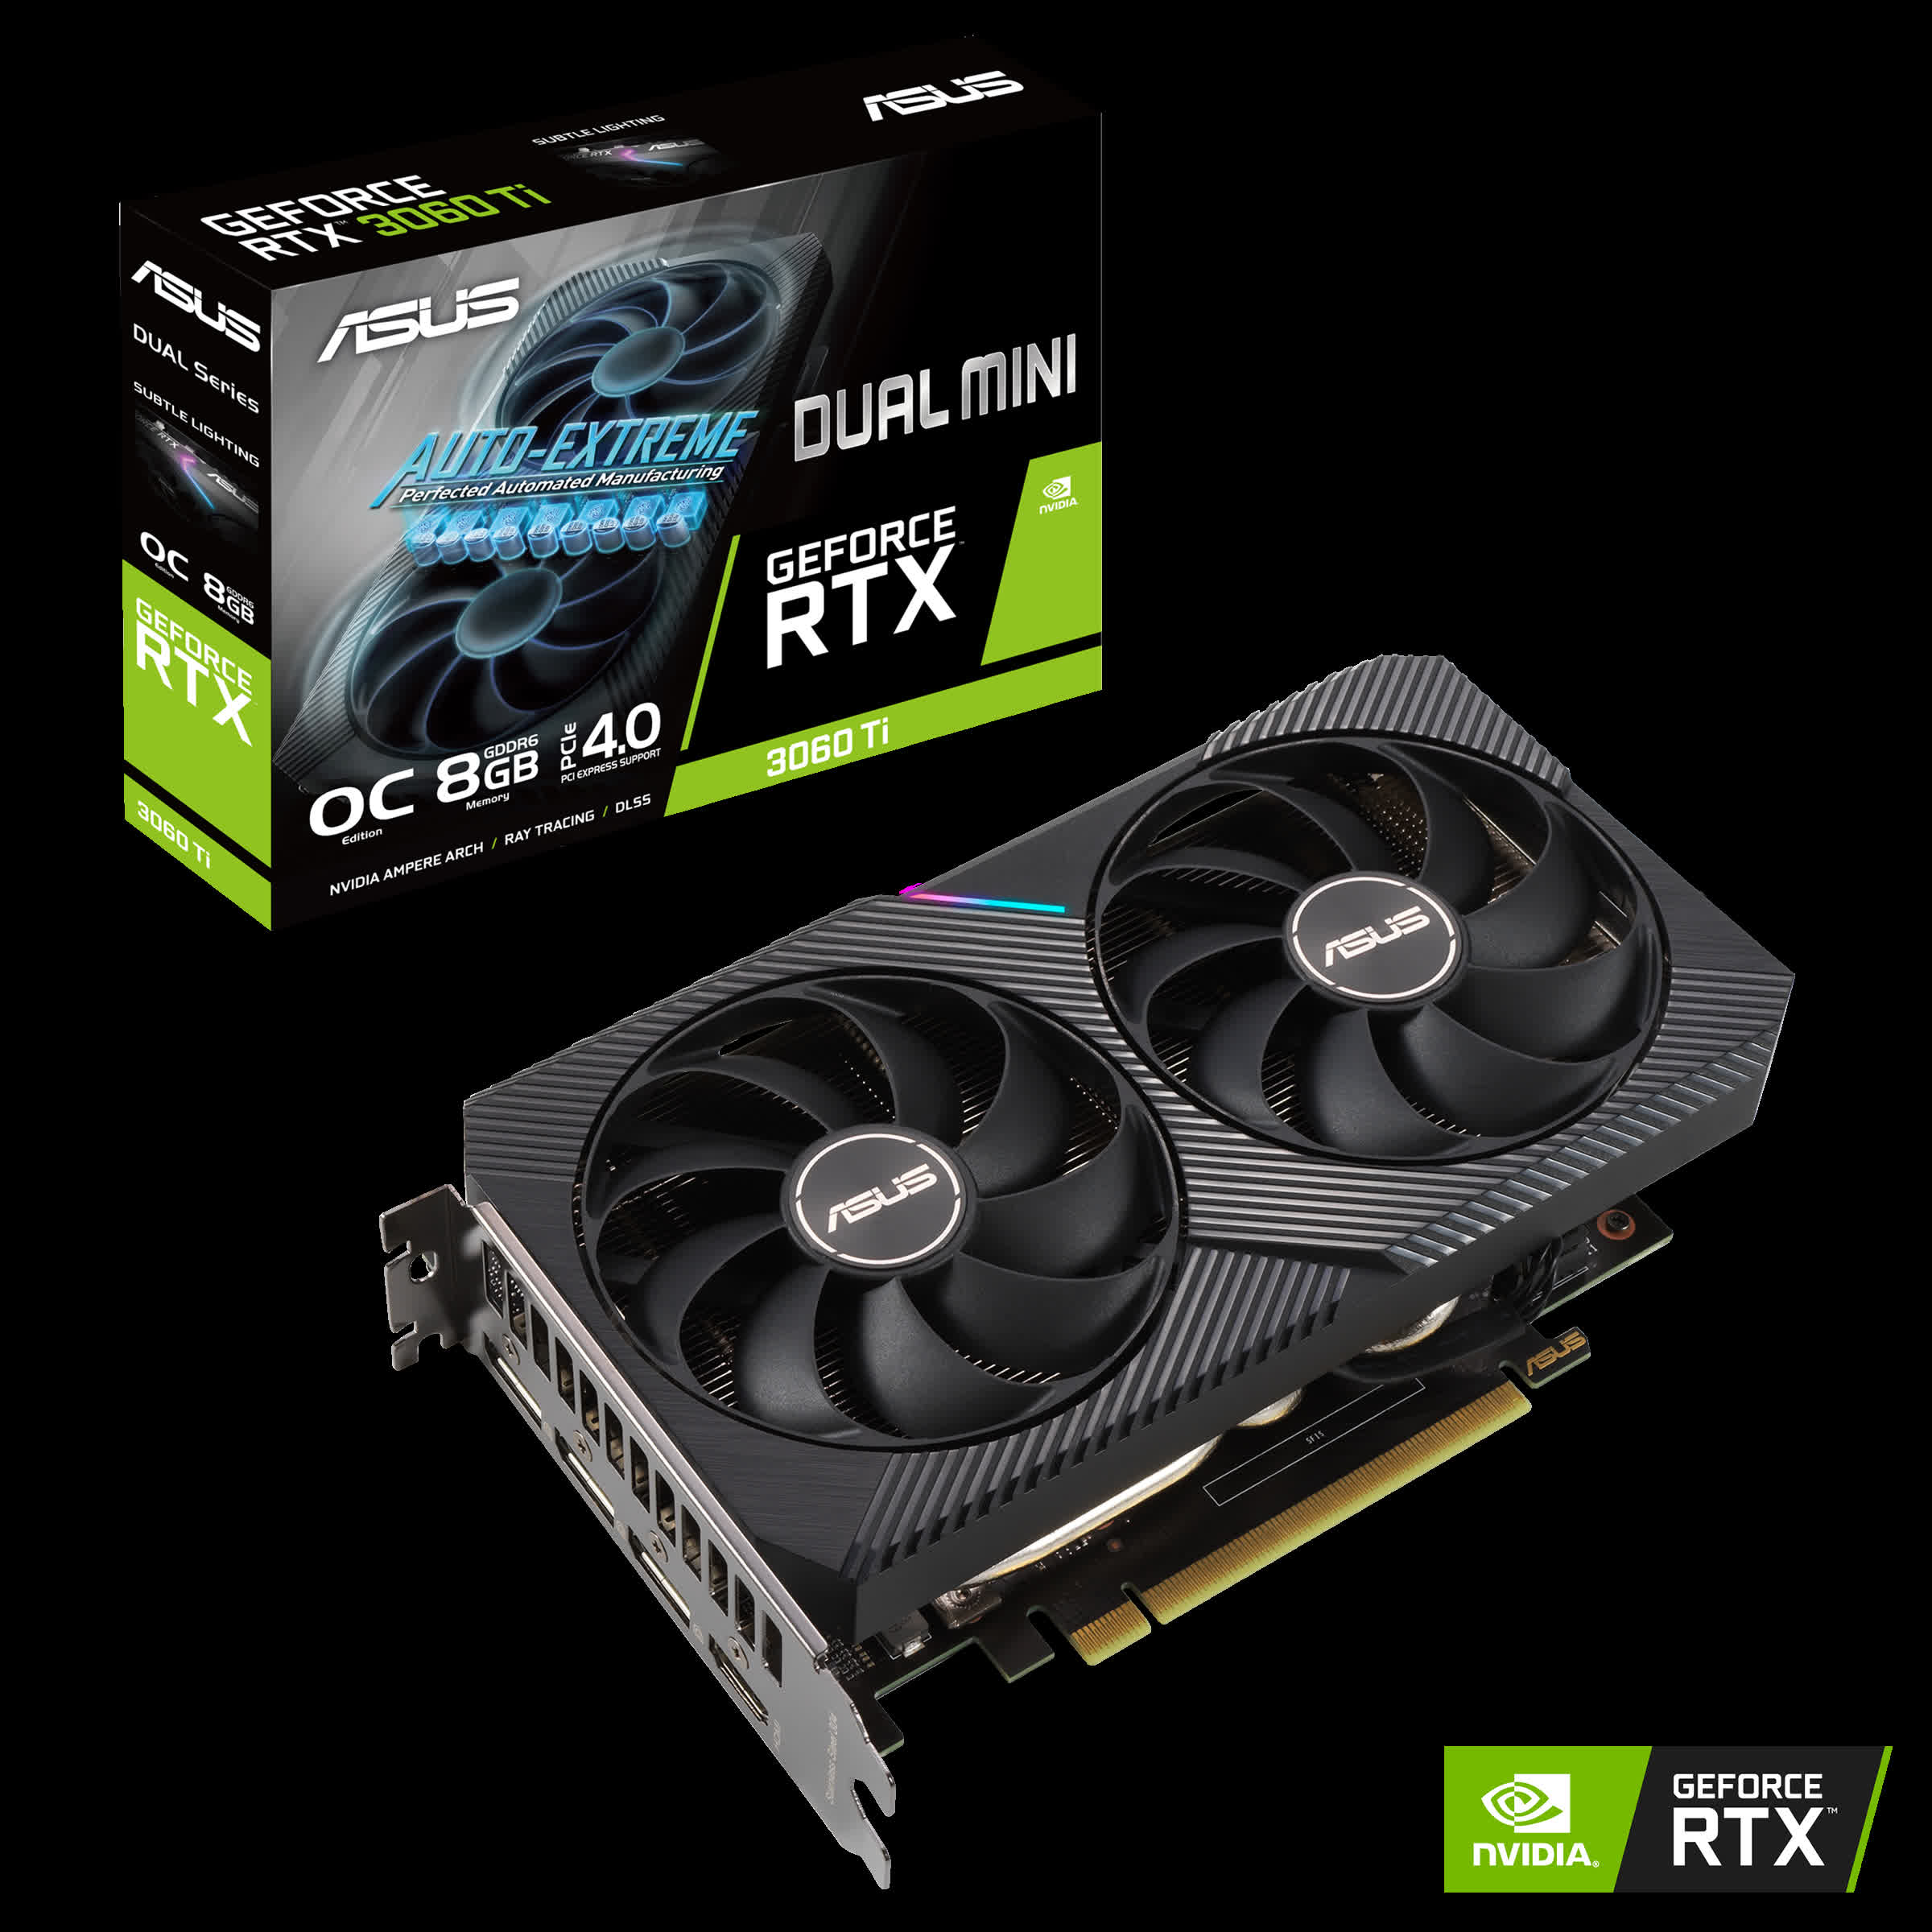 Asus reveals tiny RTX 3060 perfect for mini-ITX systems